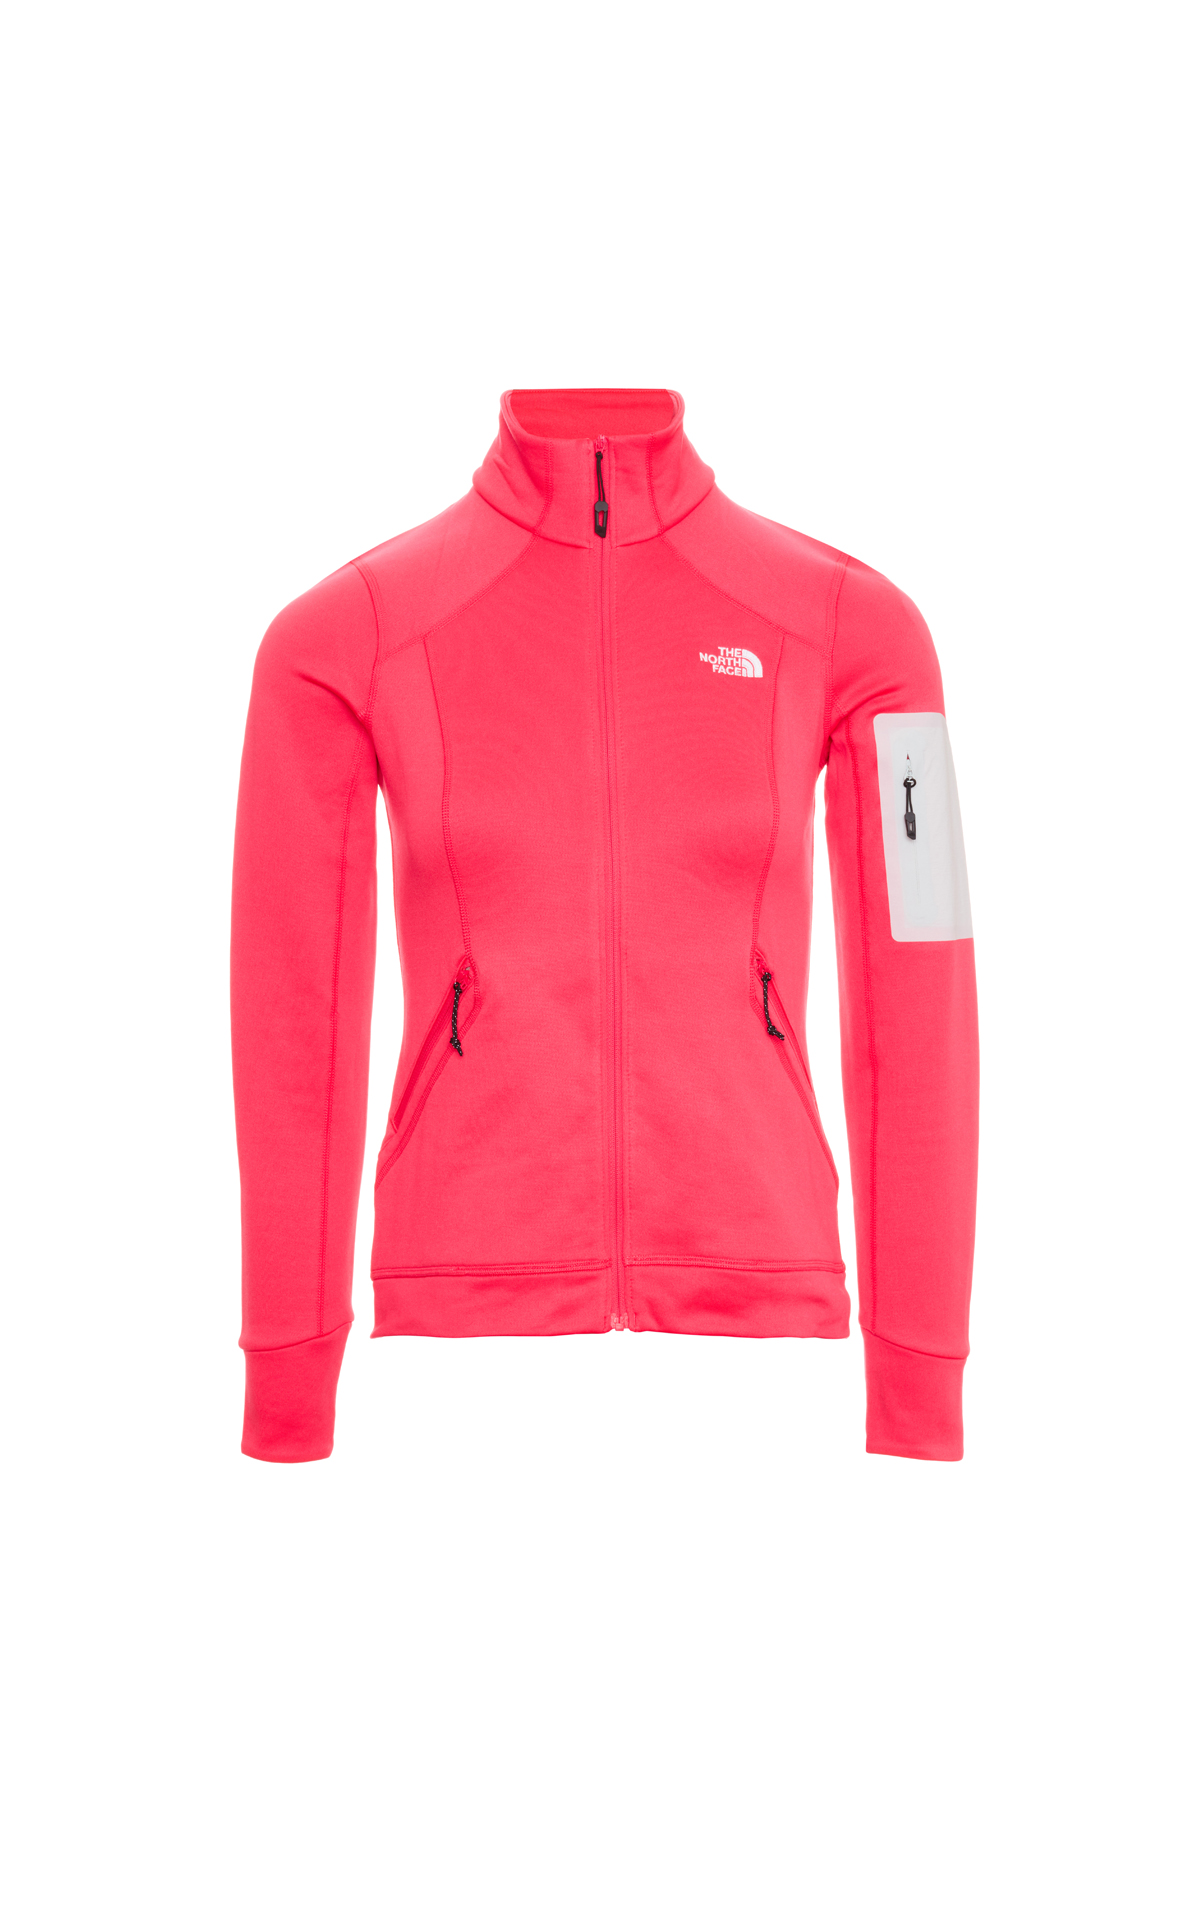 The North Face Womens pink fleece jacket from Bicester Village